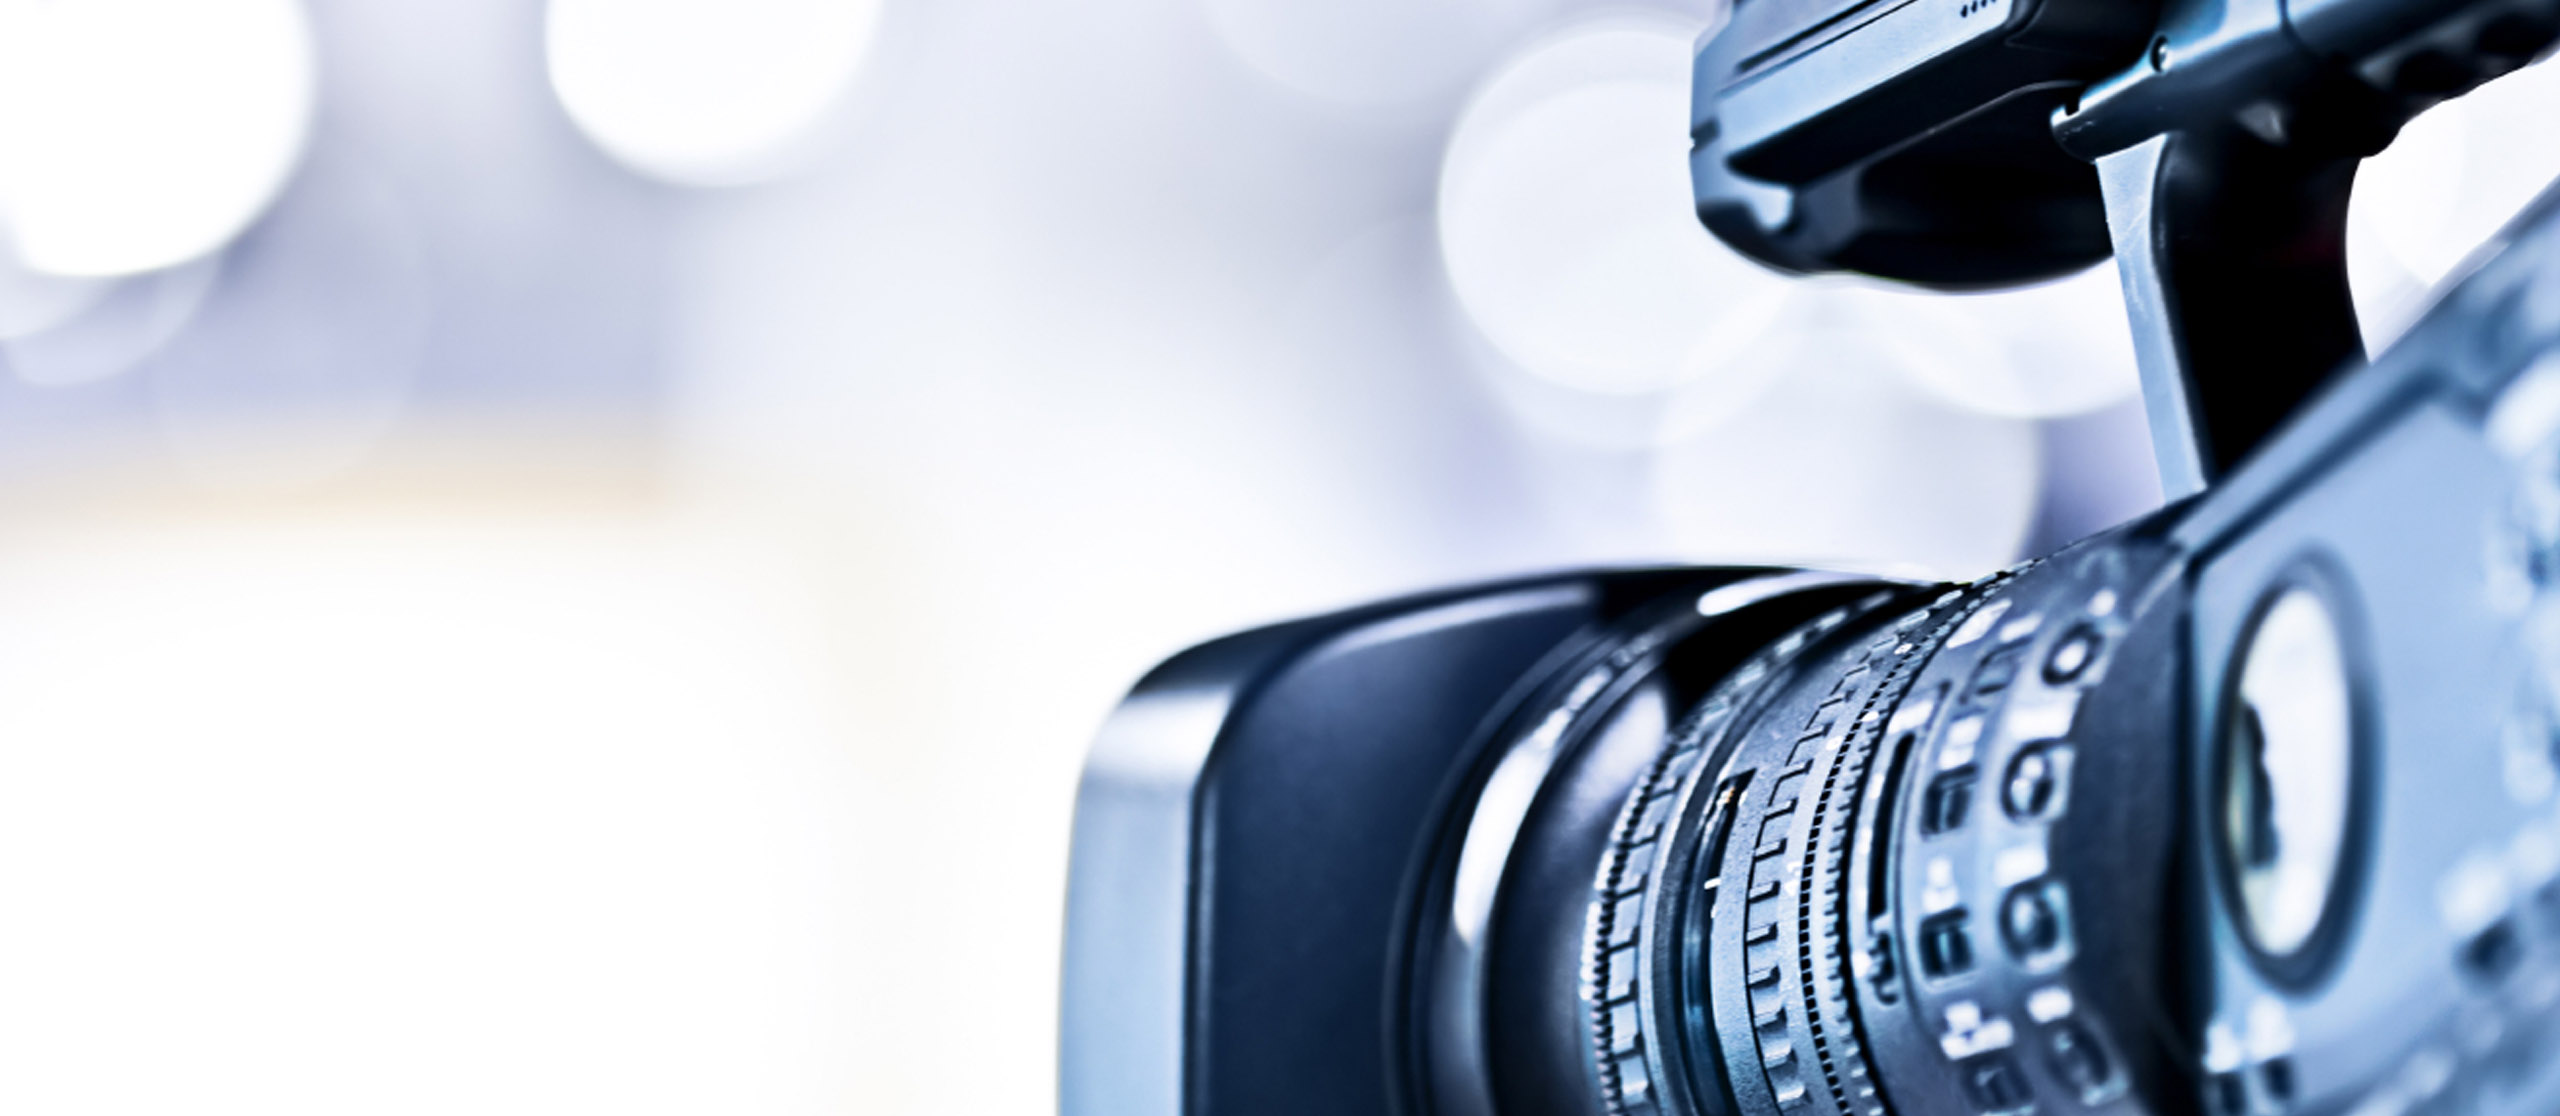 What to Look for in a Video Production Company